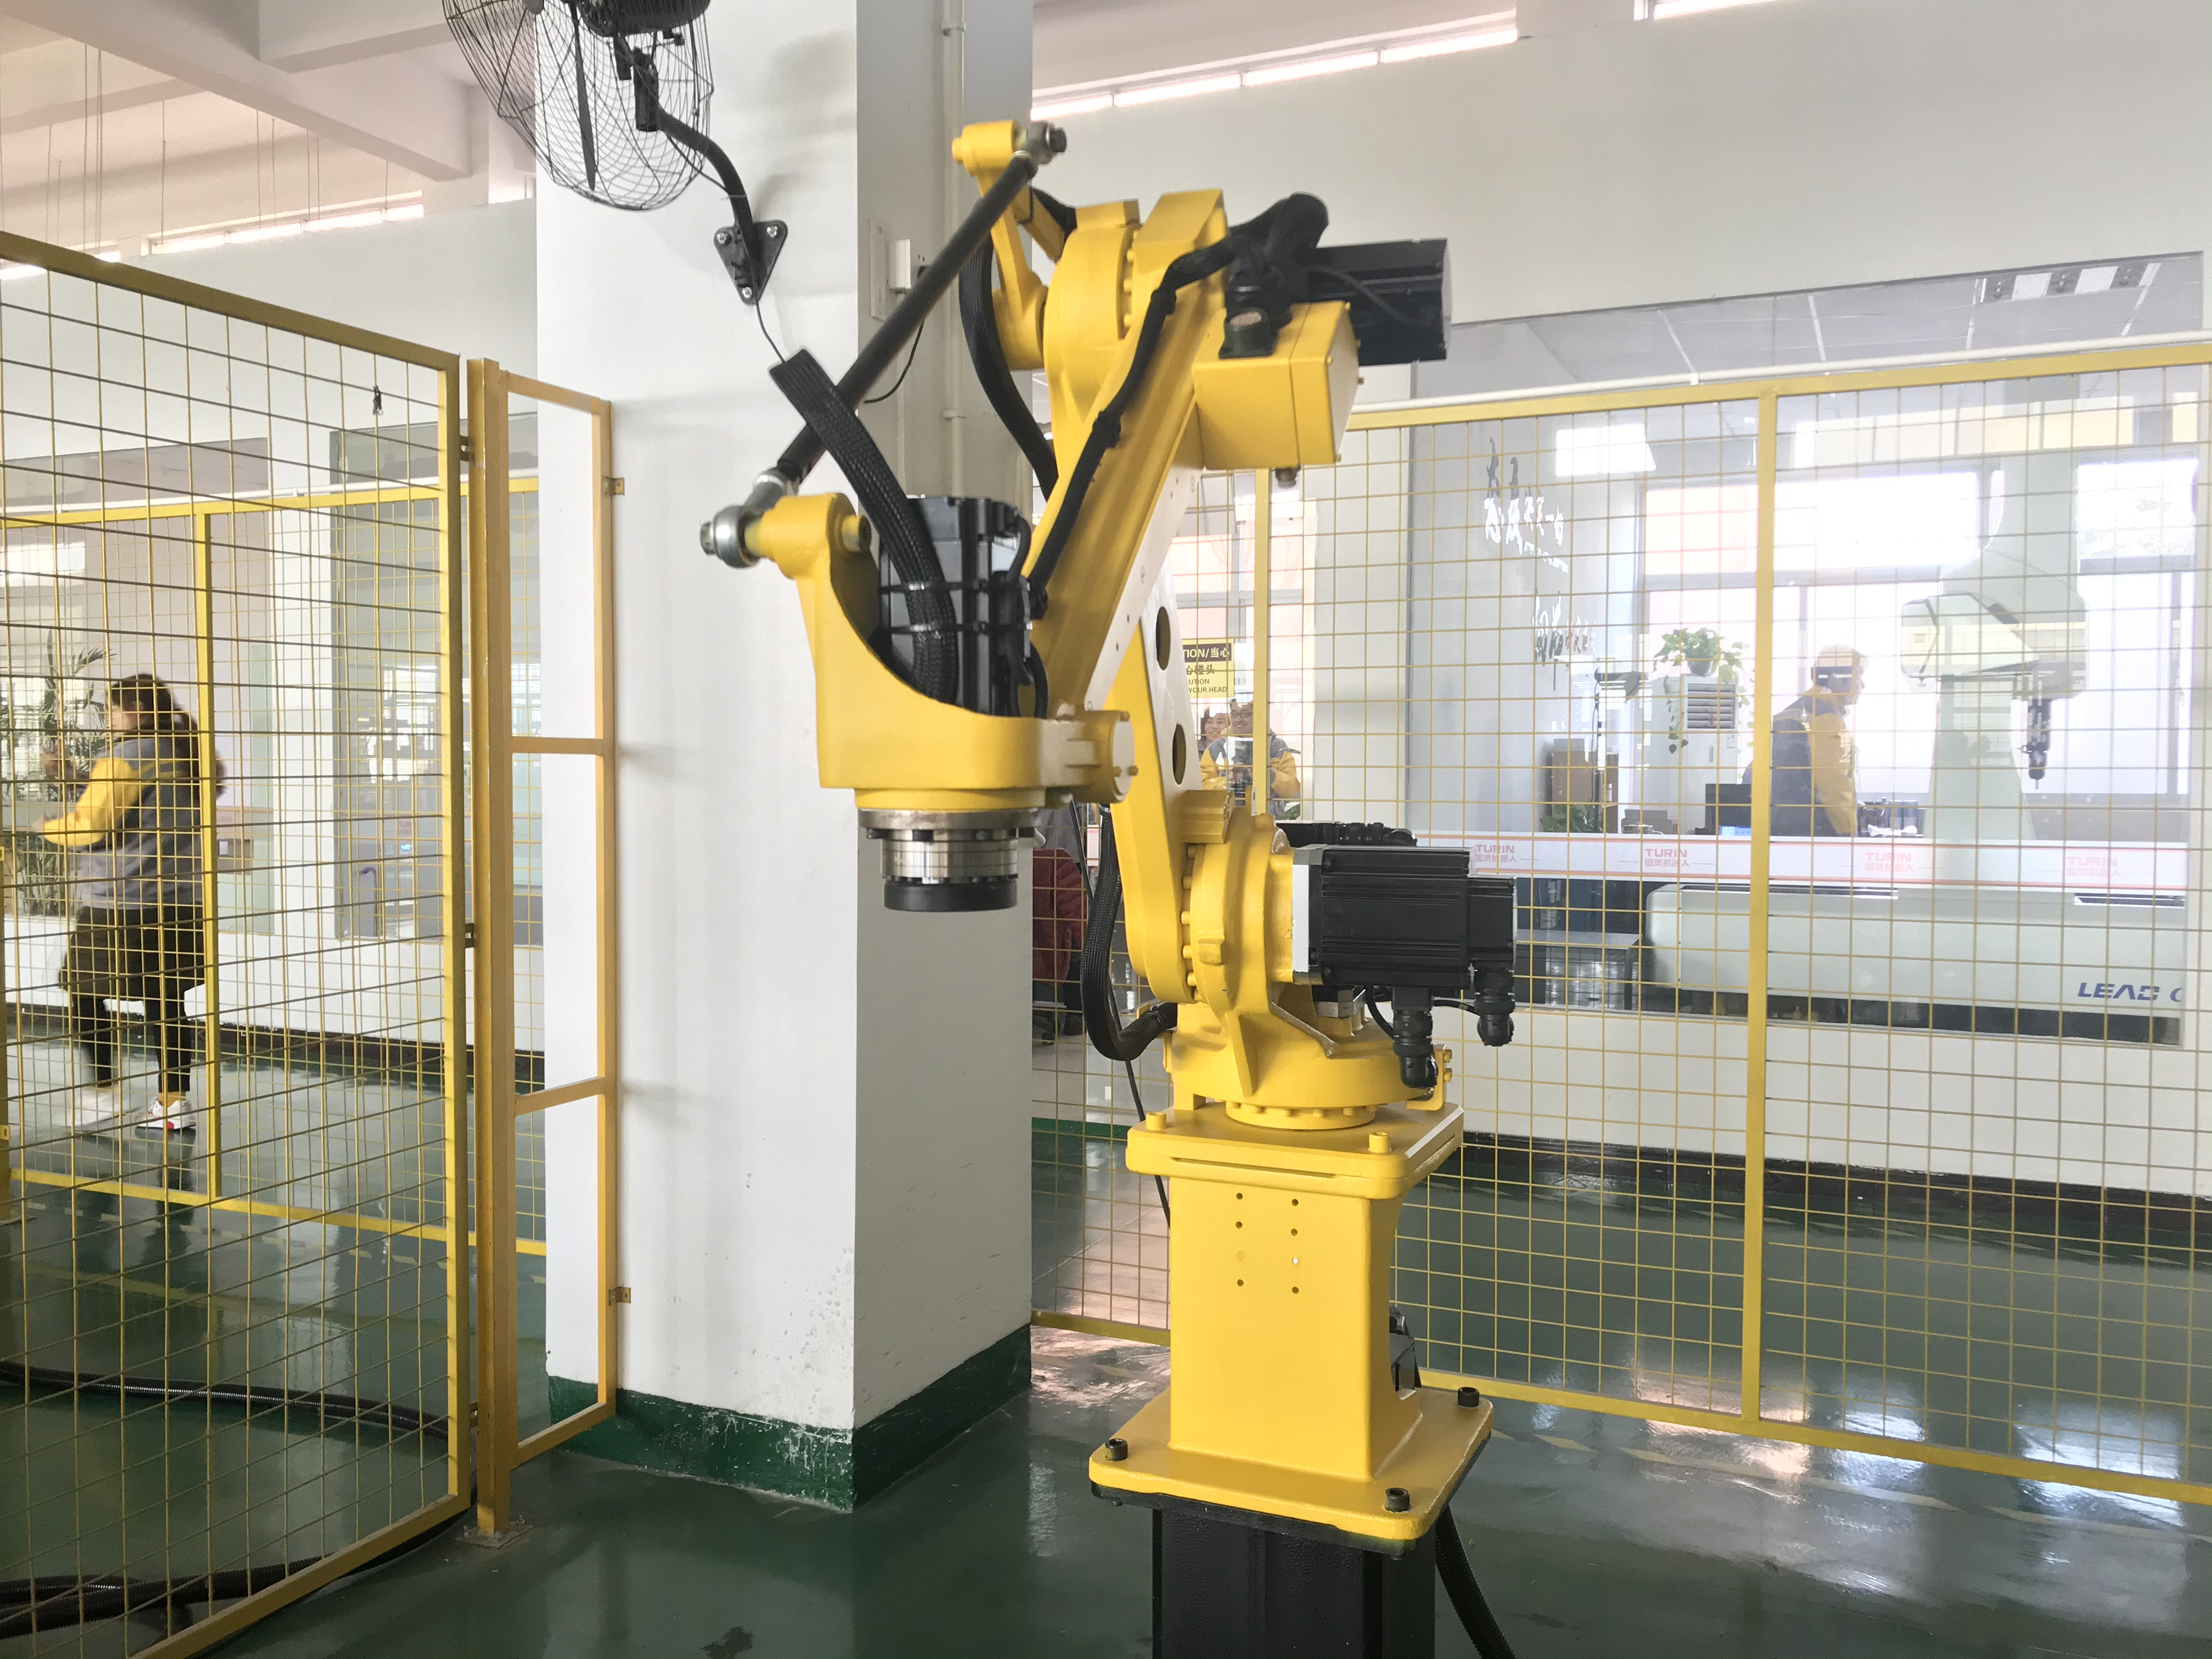 Press Machine Tending Robotic Arm TKB4800.jpg